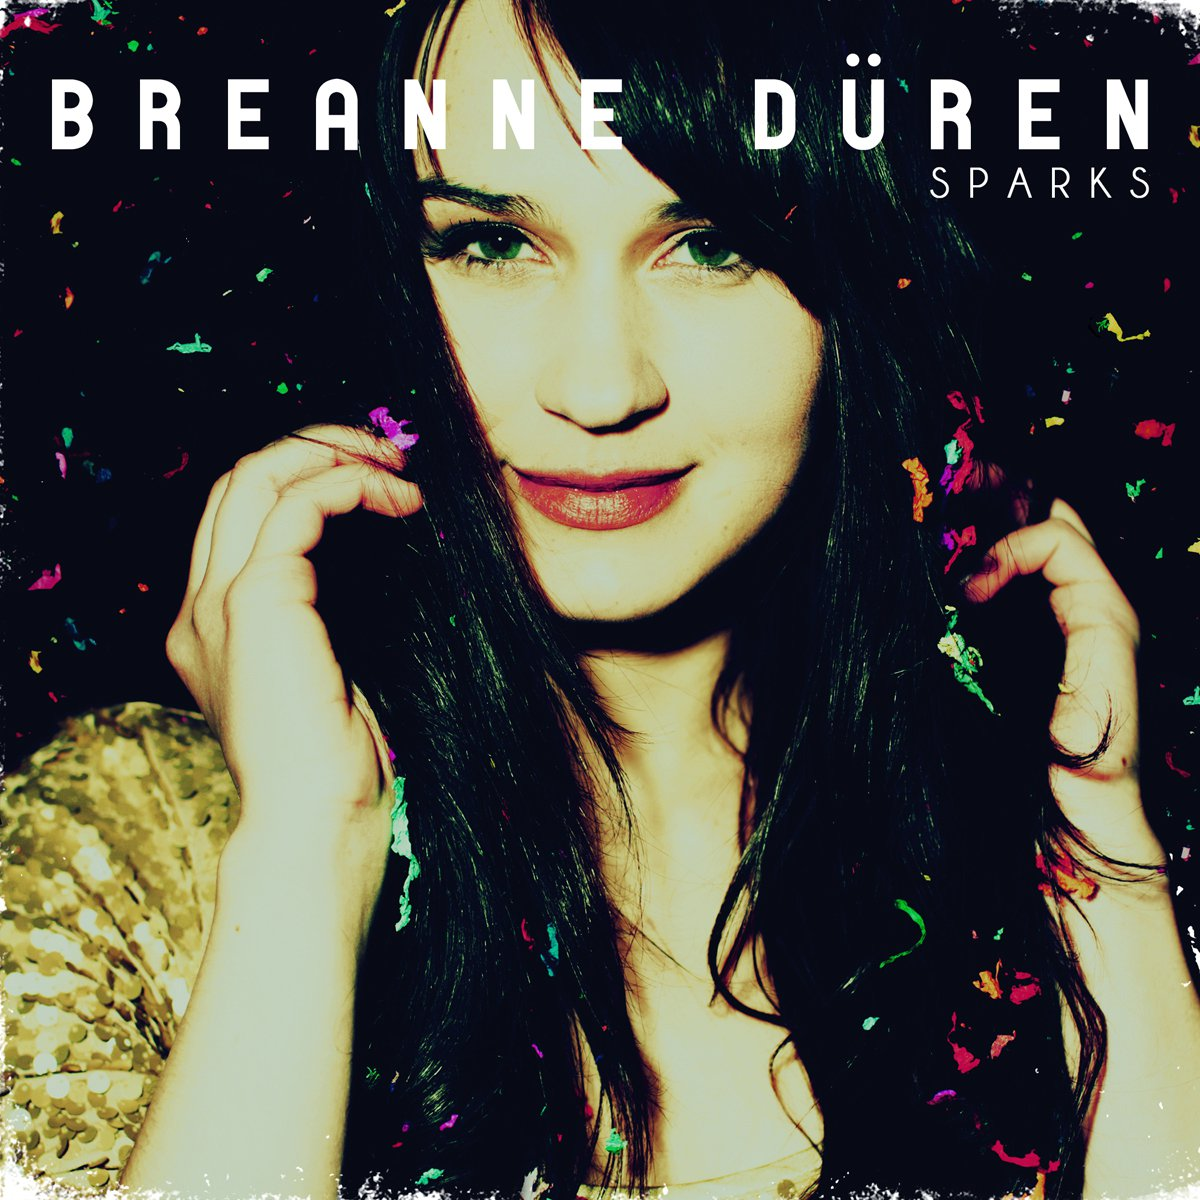 """Breanne Düren"" font, please. :)"